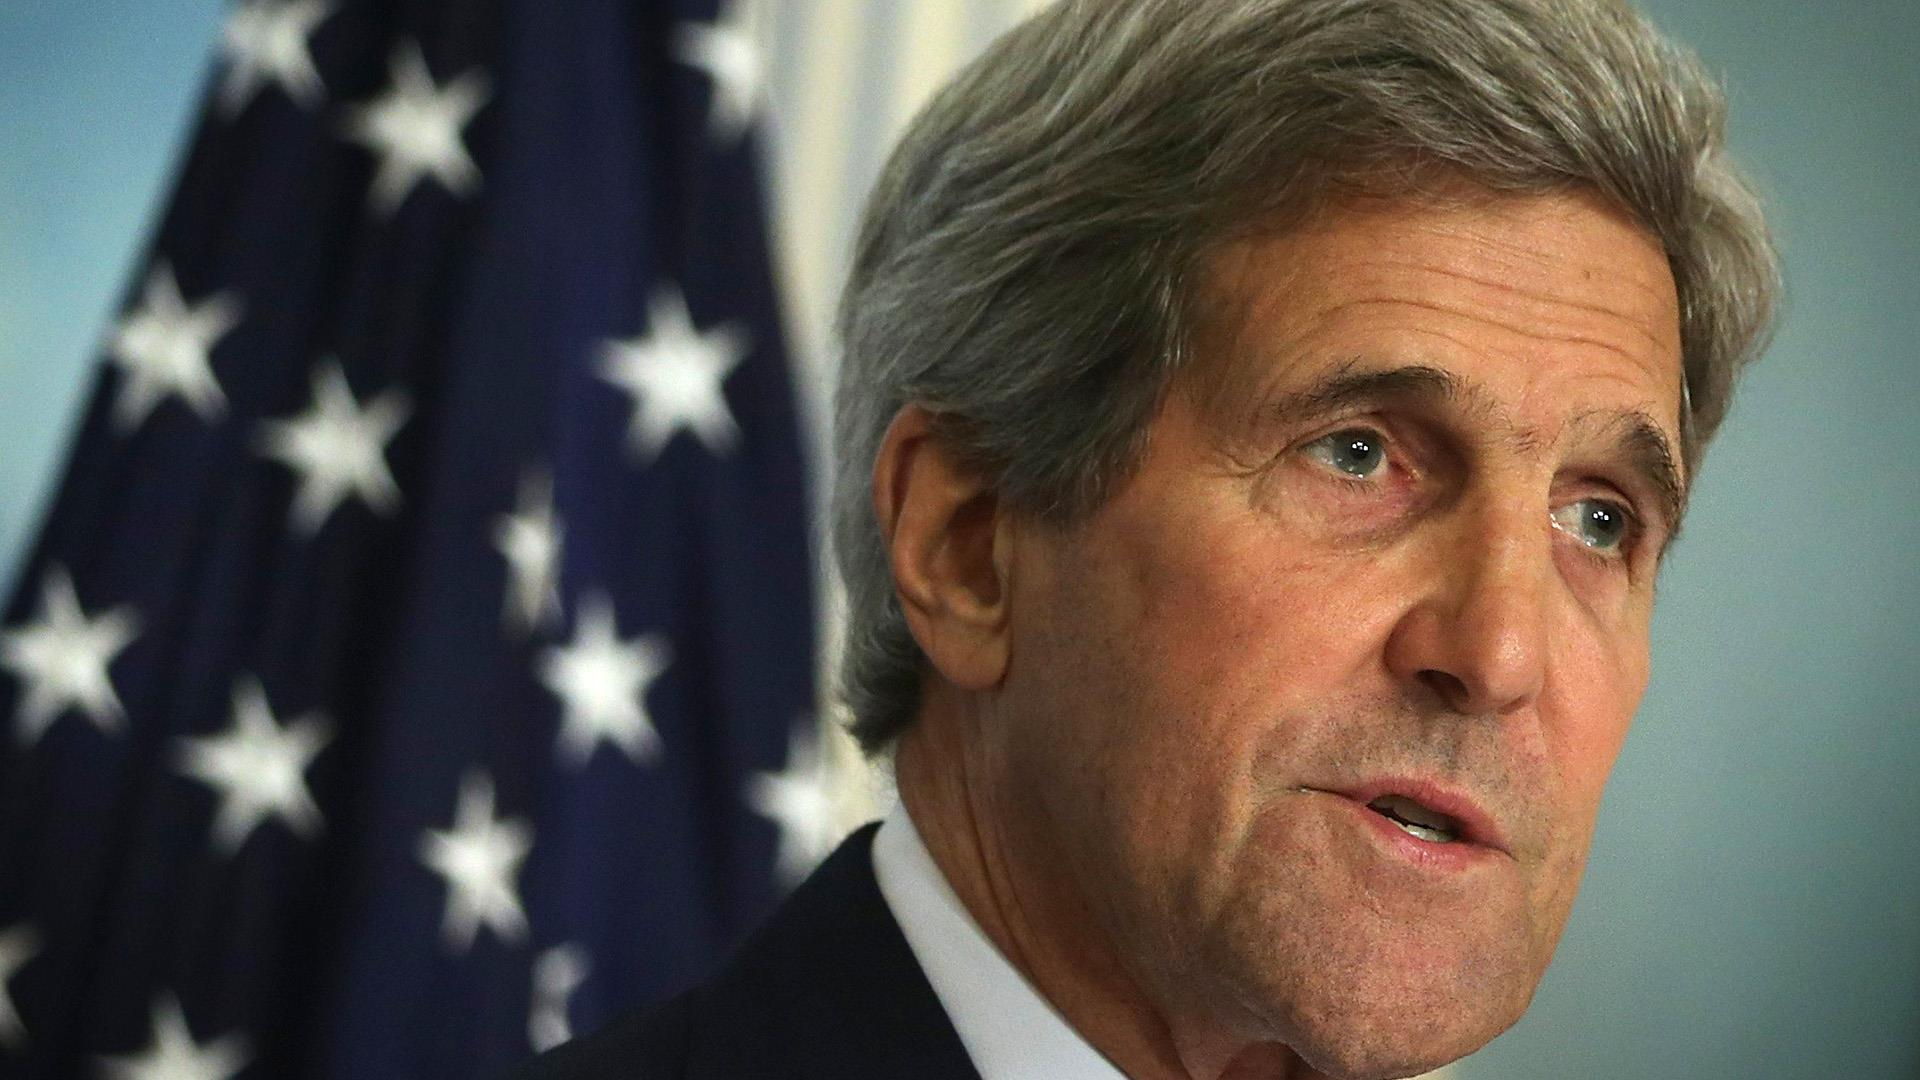 Kerry, Lavrov hold briefing in Russia